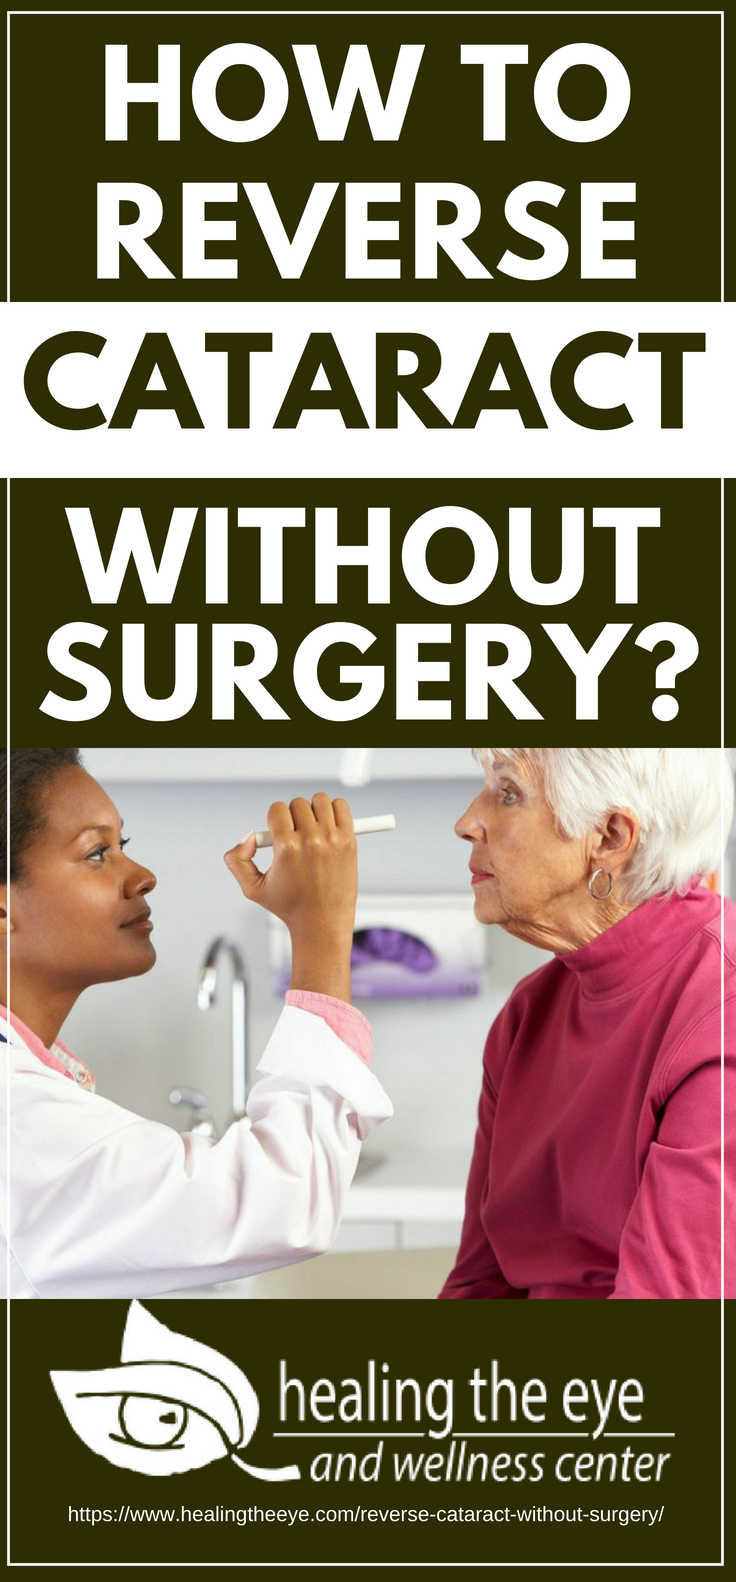 Pinterest Placard | How to Reverse Cataract Without Surgery?